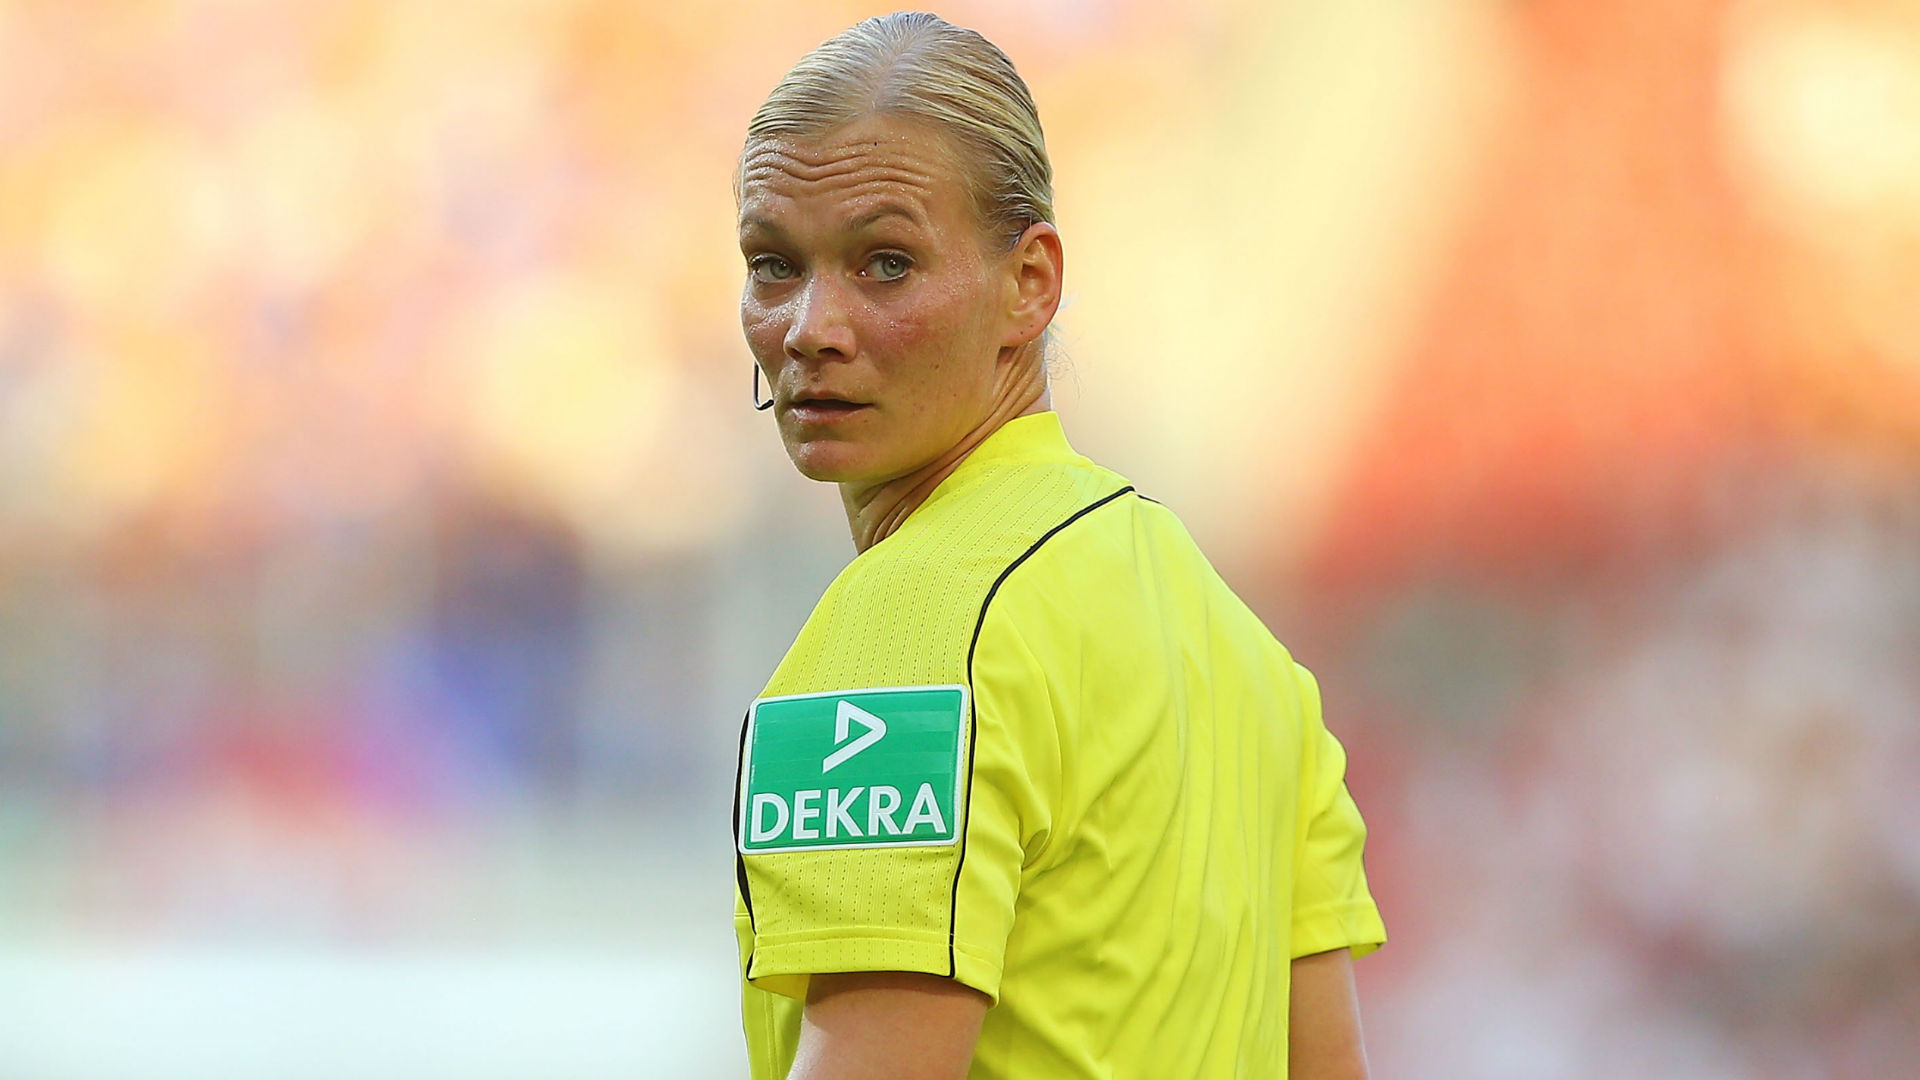 Bundesliga signs up first woman referee for next season